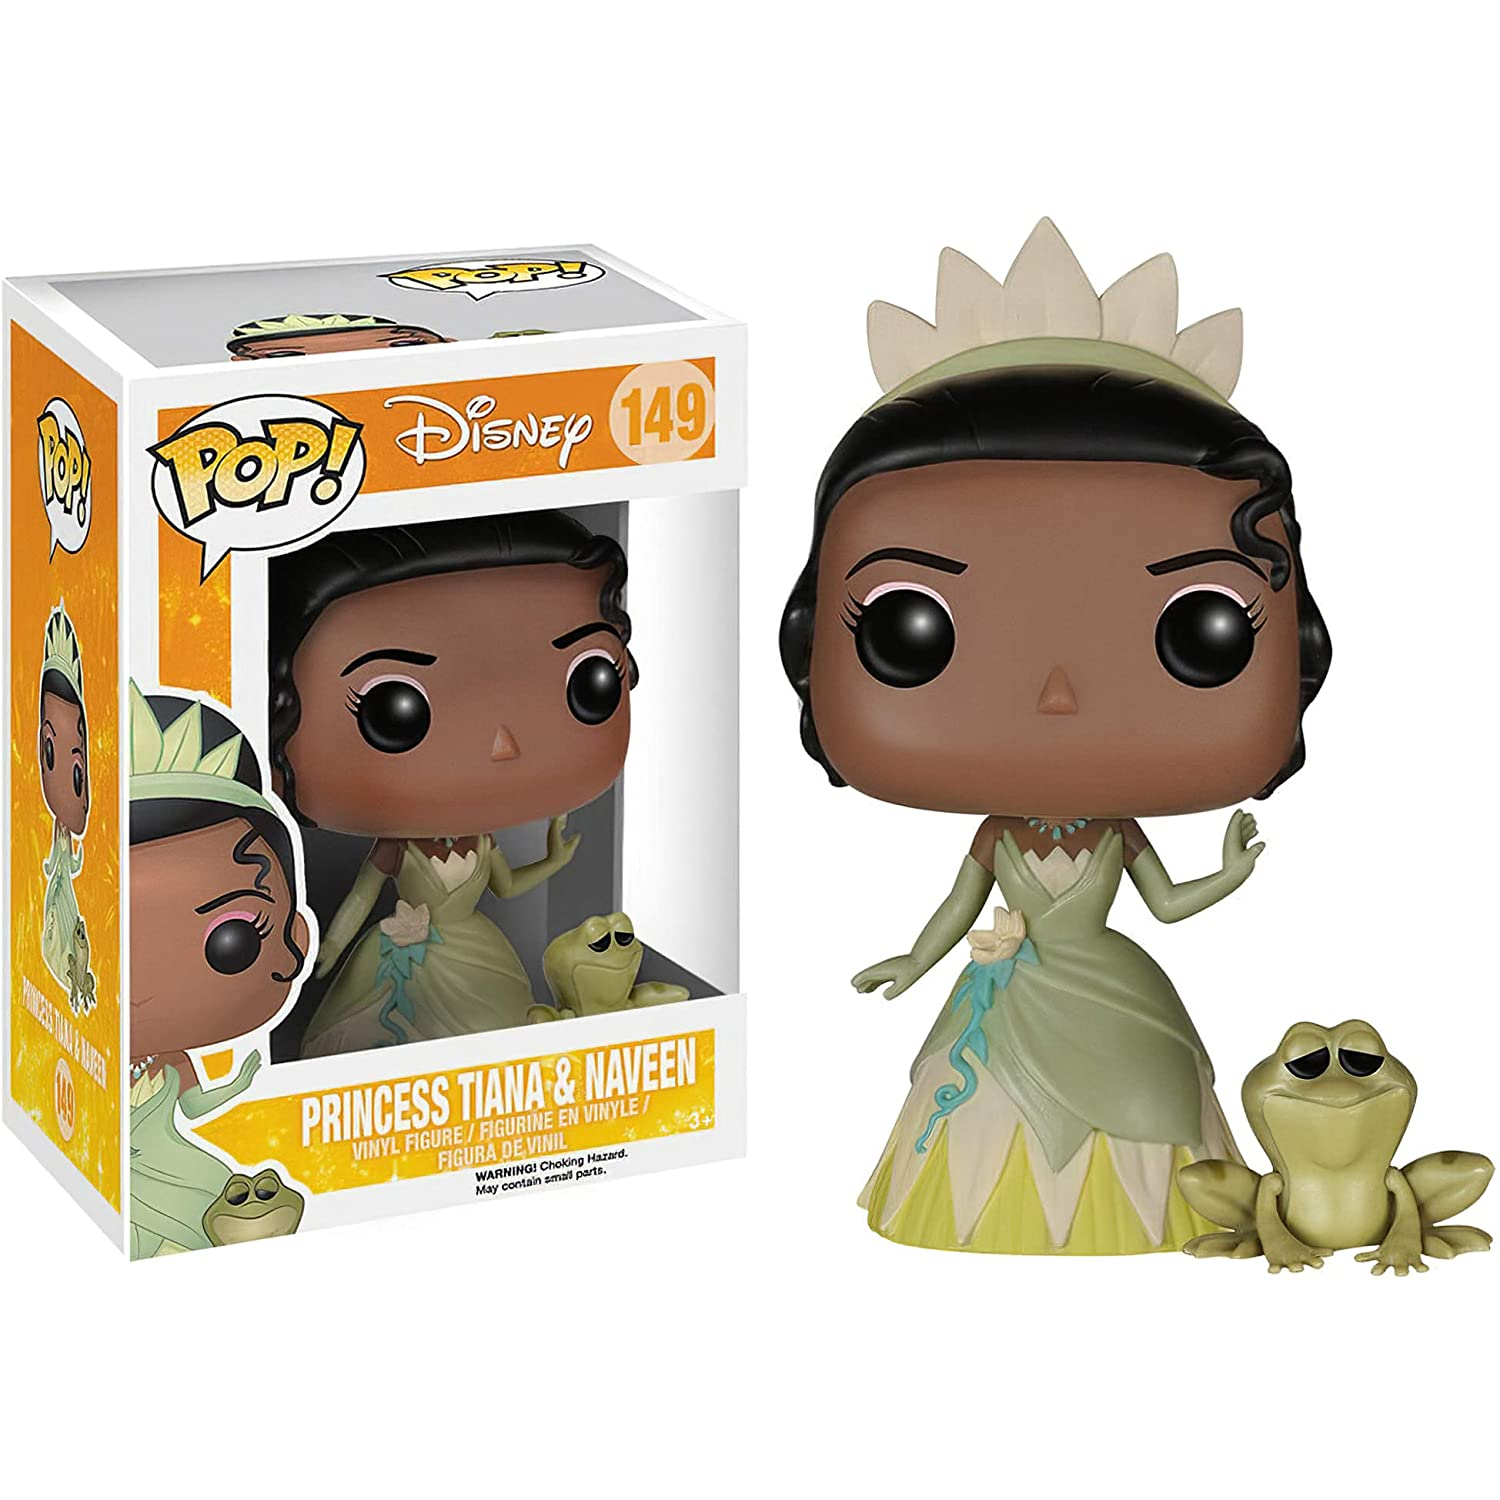 Disney Vinyl Figure /& 1 PET Plastic Graphical Protector Bundle Funko Princess Tiana /& Naveen: The Princess and The Frog x POP #149 // 05087 - B BCC9404248